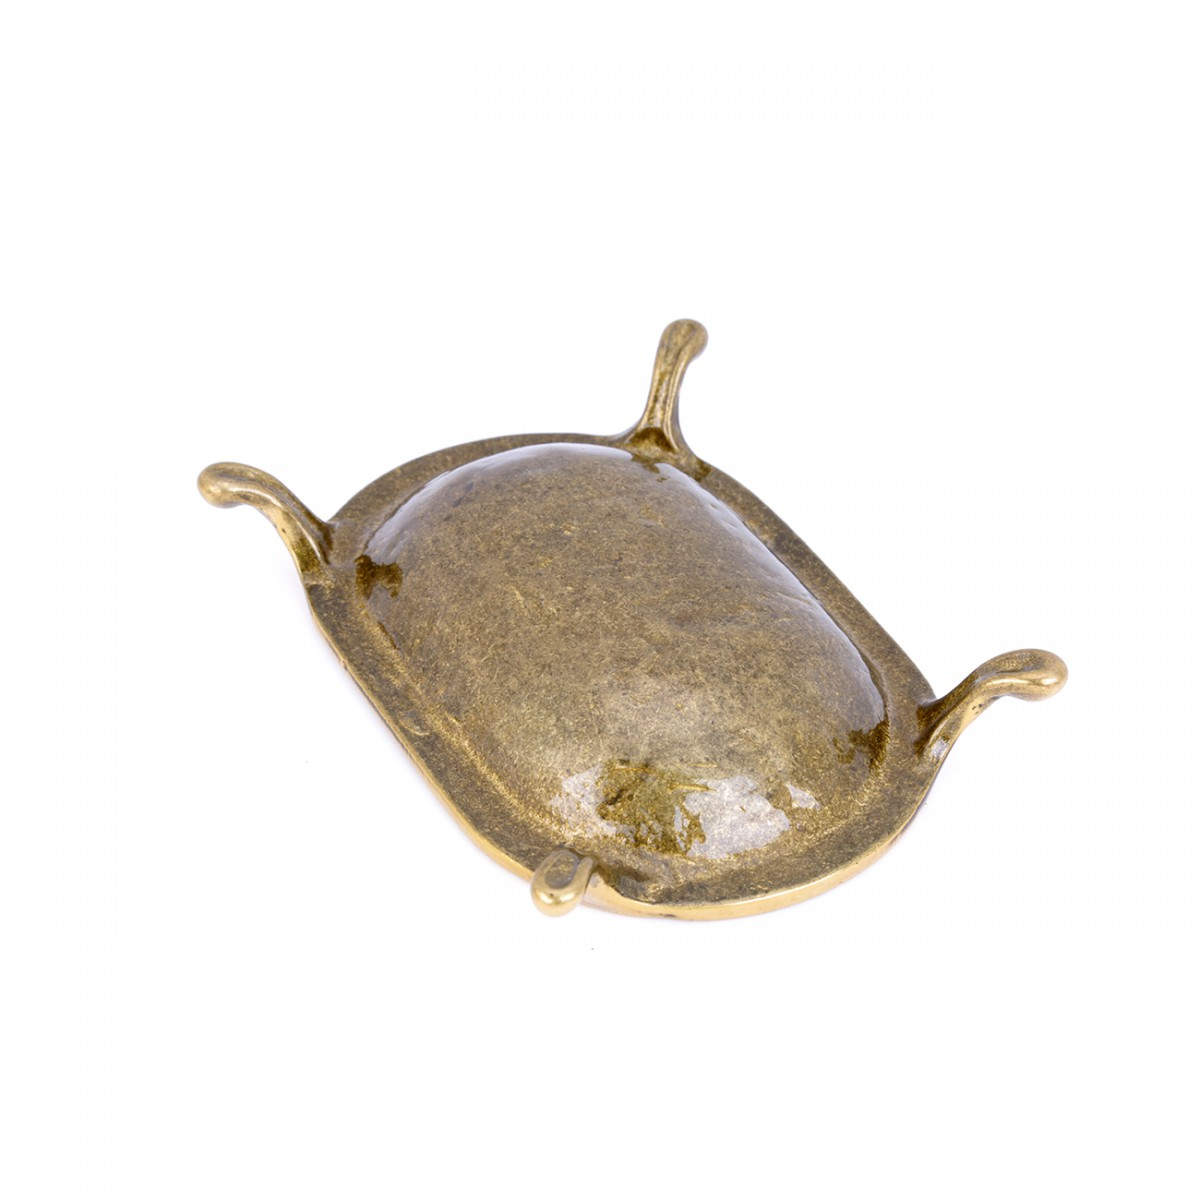 Vintage Freestanding Brass Soap Dish Clawfoot Tub Style brass soap dish traditional classic vintage soap dish unique cute classy soap dish tray